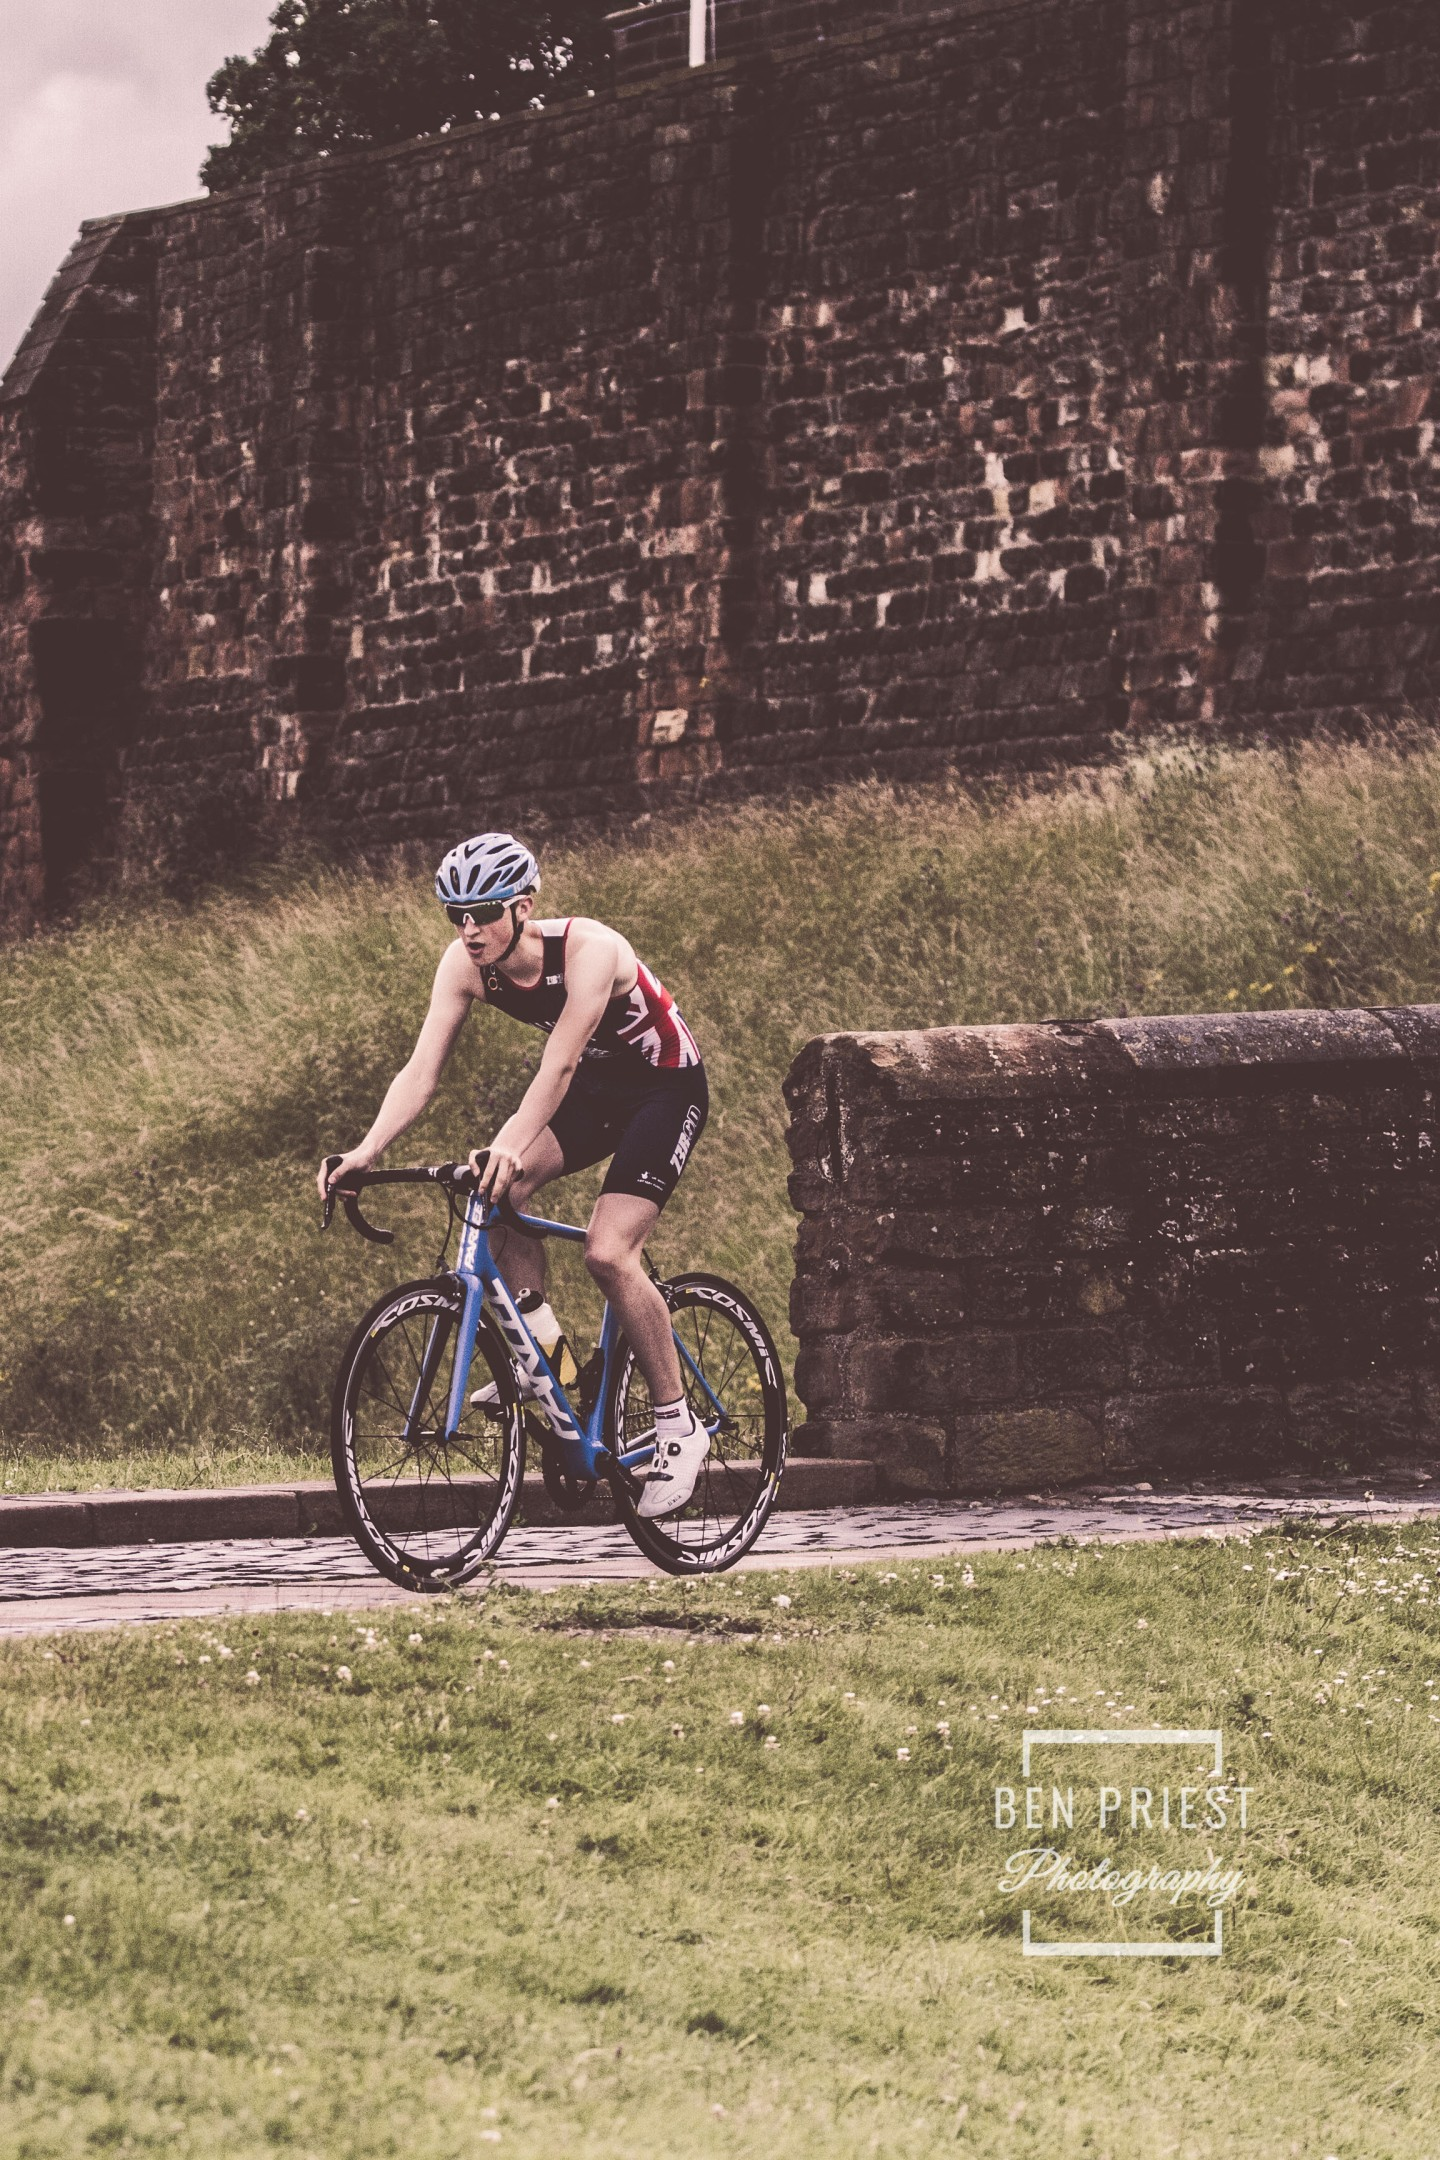 Team GB Triathlete – Jordan Hull – Cumbrian Ambassador for the World Health Innovation Summit no.2